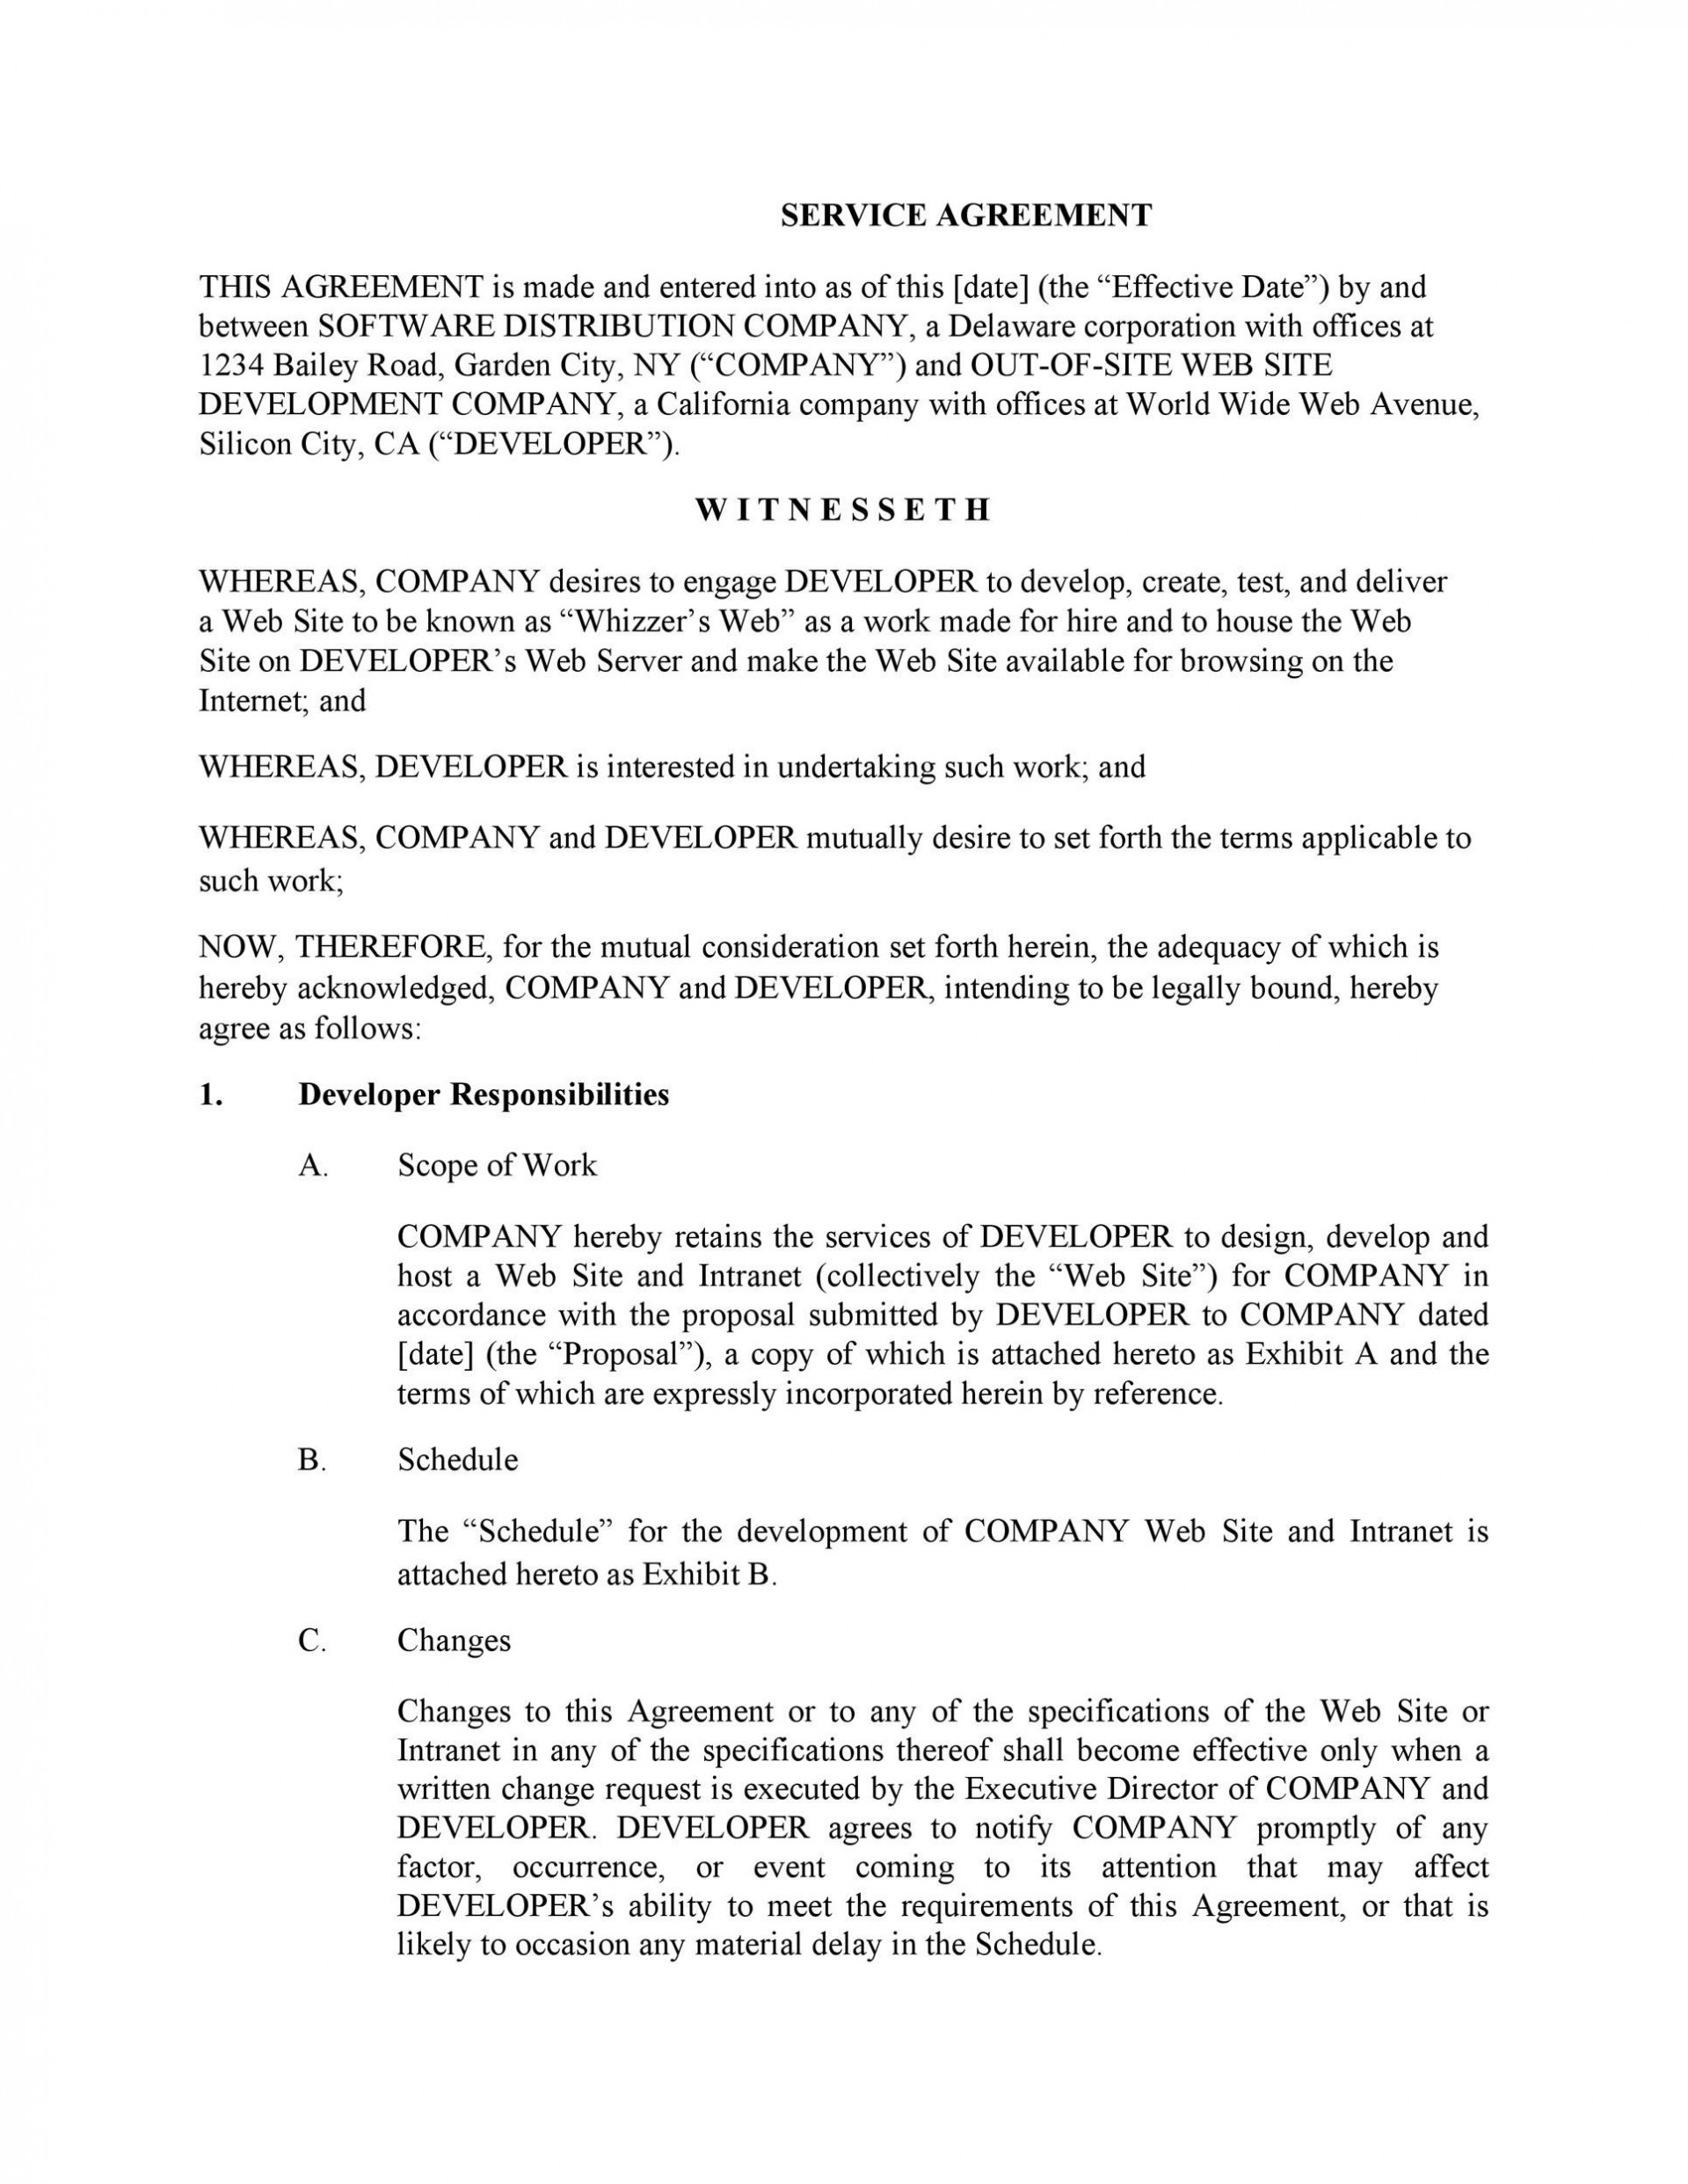 009 Stunning It Service Contract Template Sample  Support Agreement Provider South Africa Managed Example1920